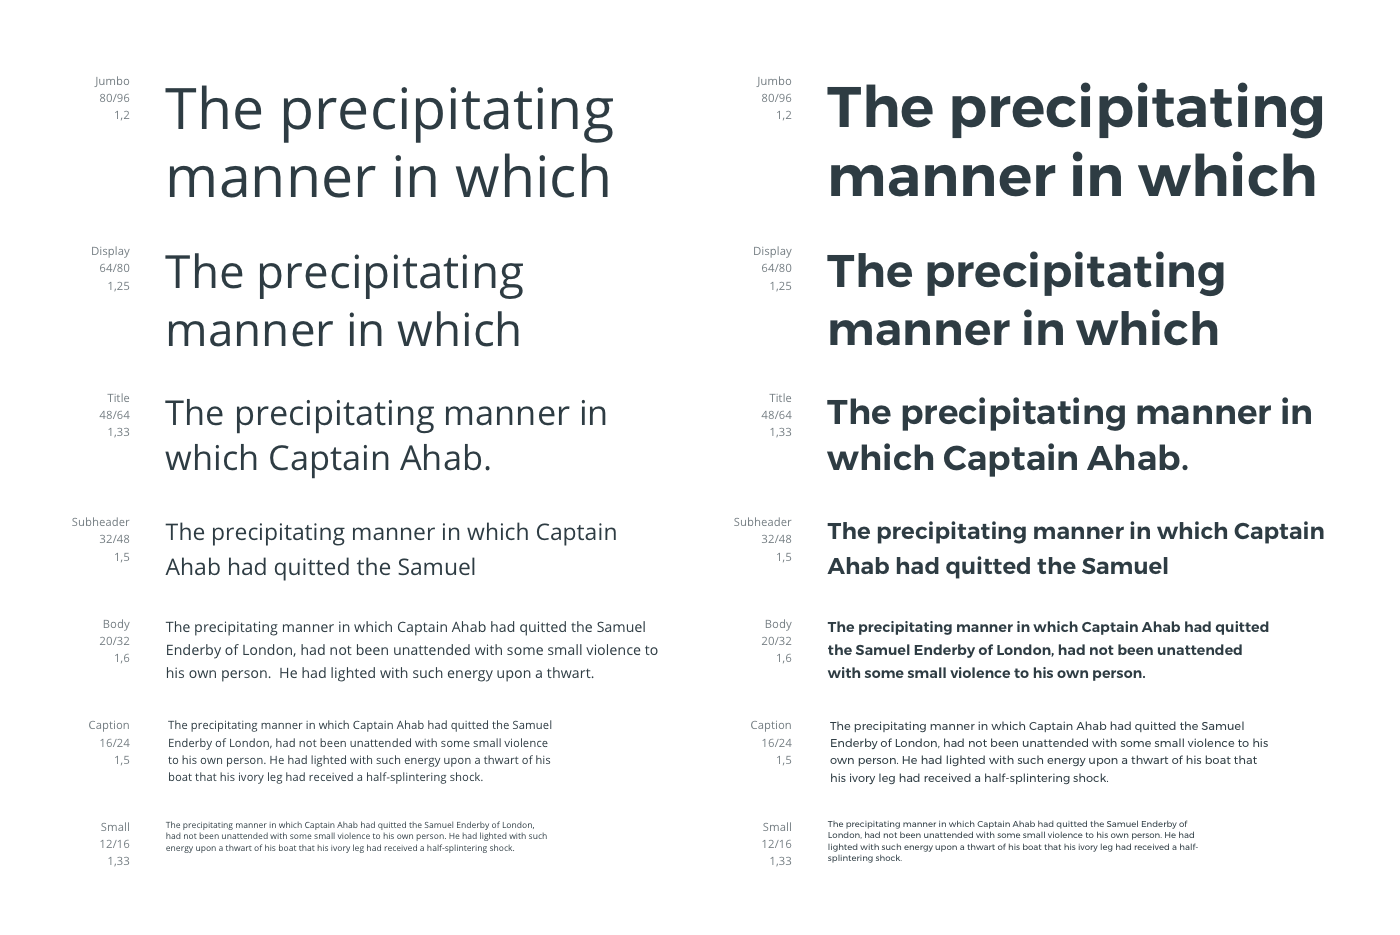 Montserrat for headings and Open Sans for body text.